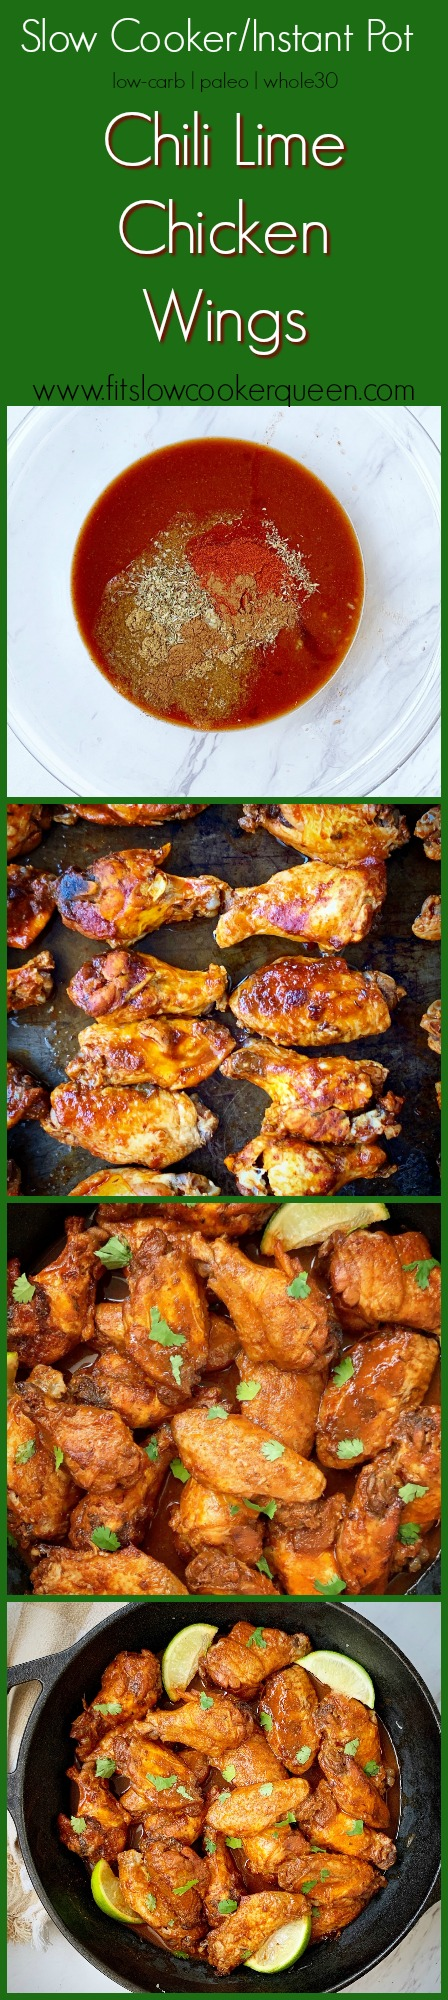 another pinterest pin for {VIDEO} Slow Cooker_Instant Pot Chili Lime Chicken Wings (Low-Carb, Paleo, Whole30)